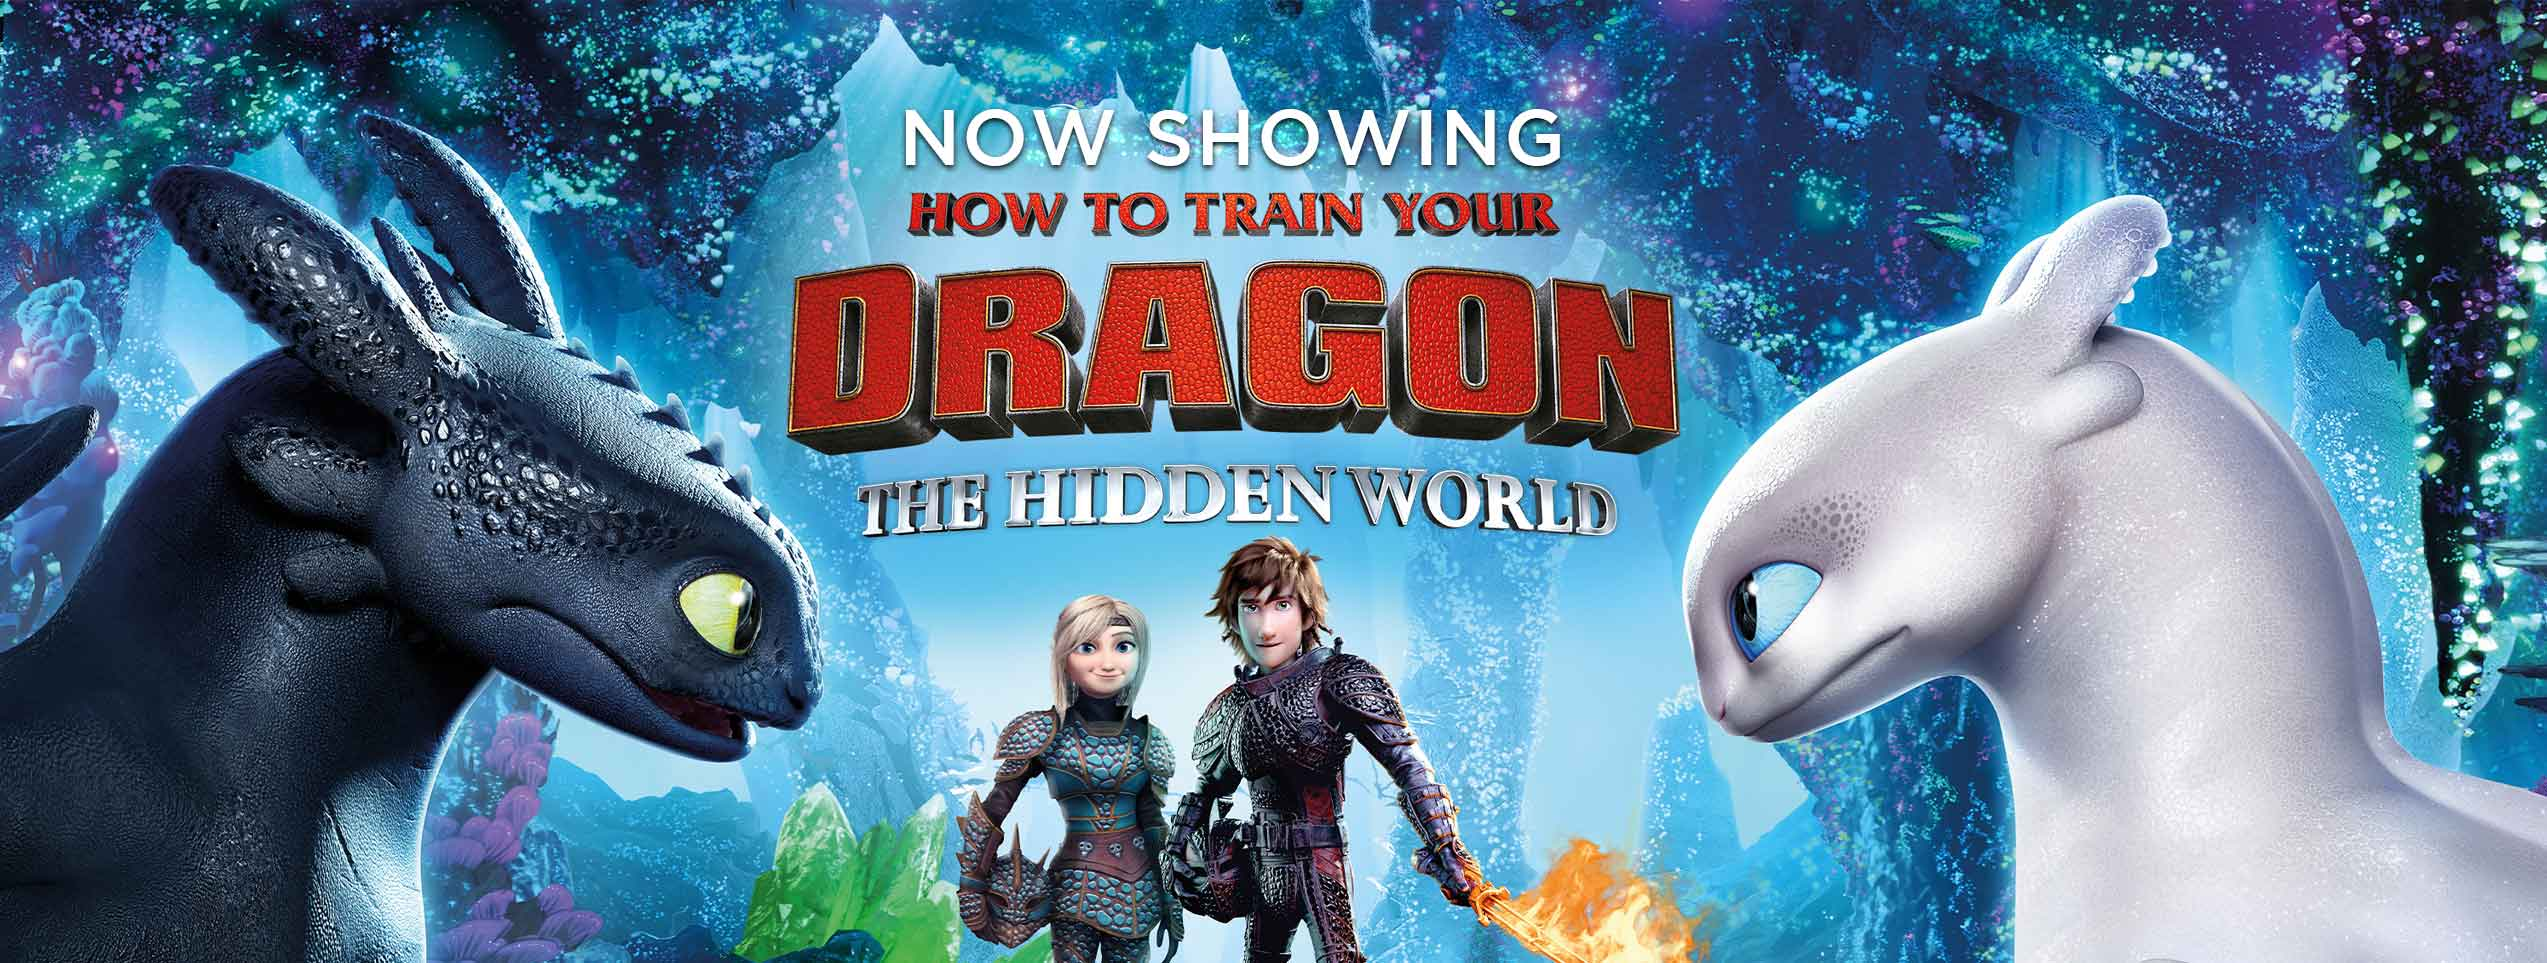 How to Train Your Dragon 3 (2D) (G) (Eng)